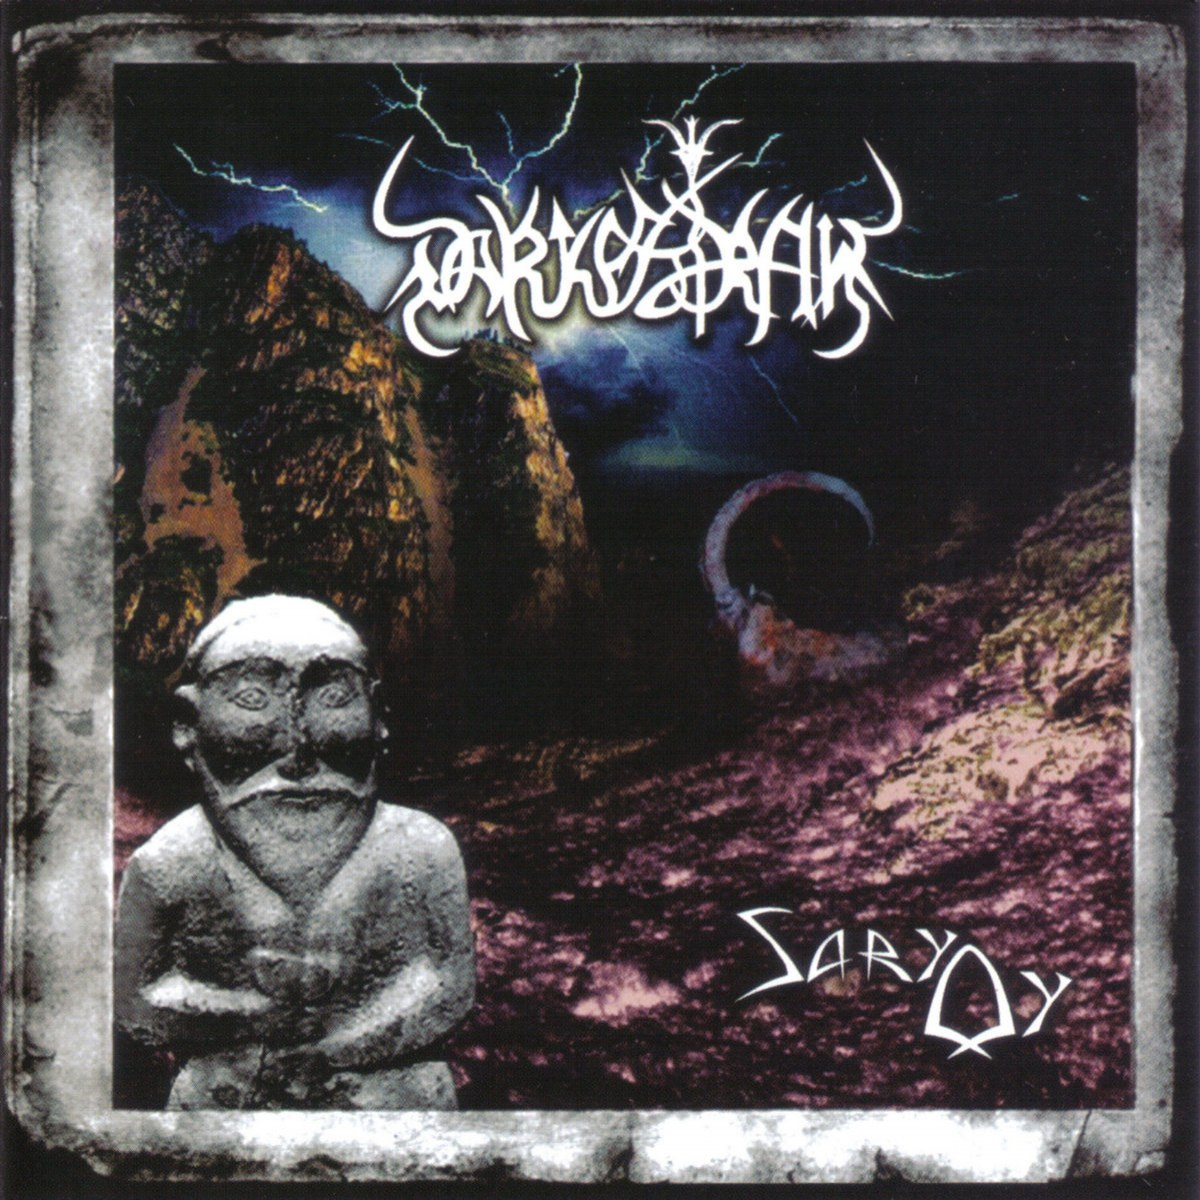 Review for Darkestrah - Sary Oy